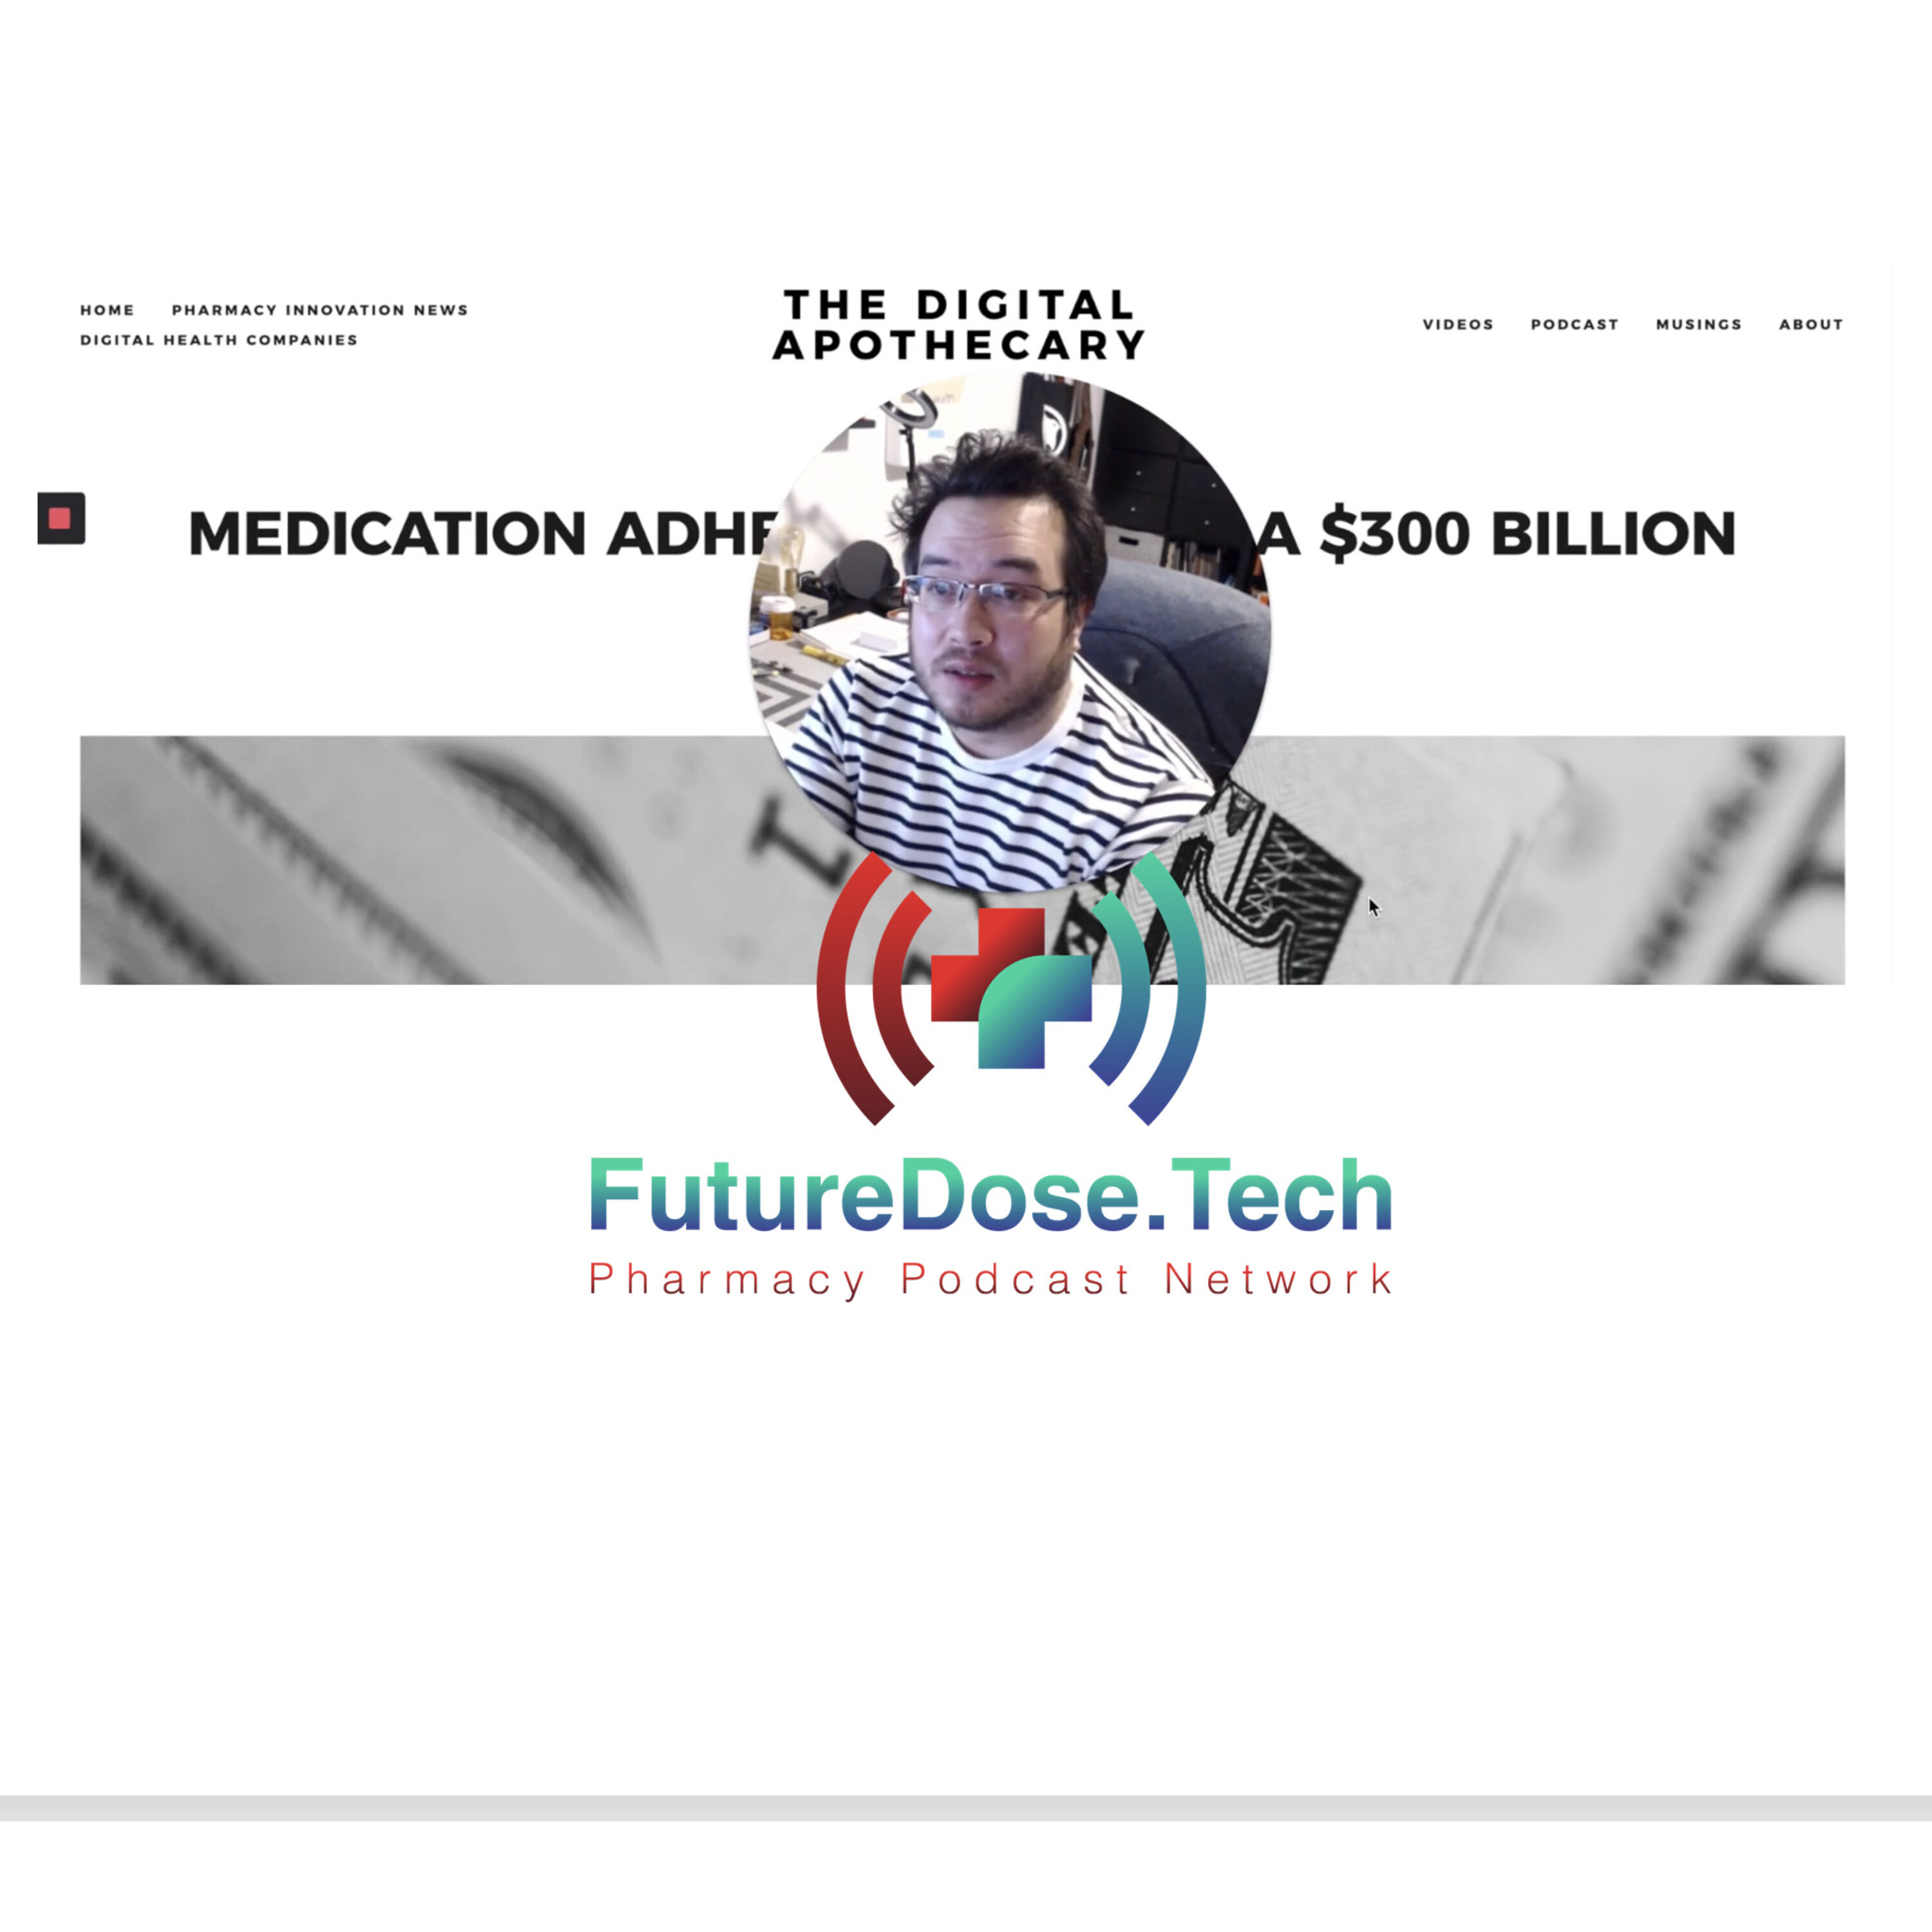 Medication Nonadherence does NOT cost $300 Billion but Medication Non-Optimization Costs More - PPN Episode 887